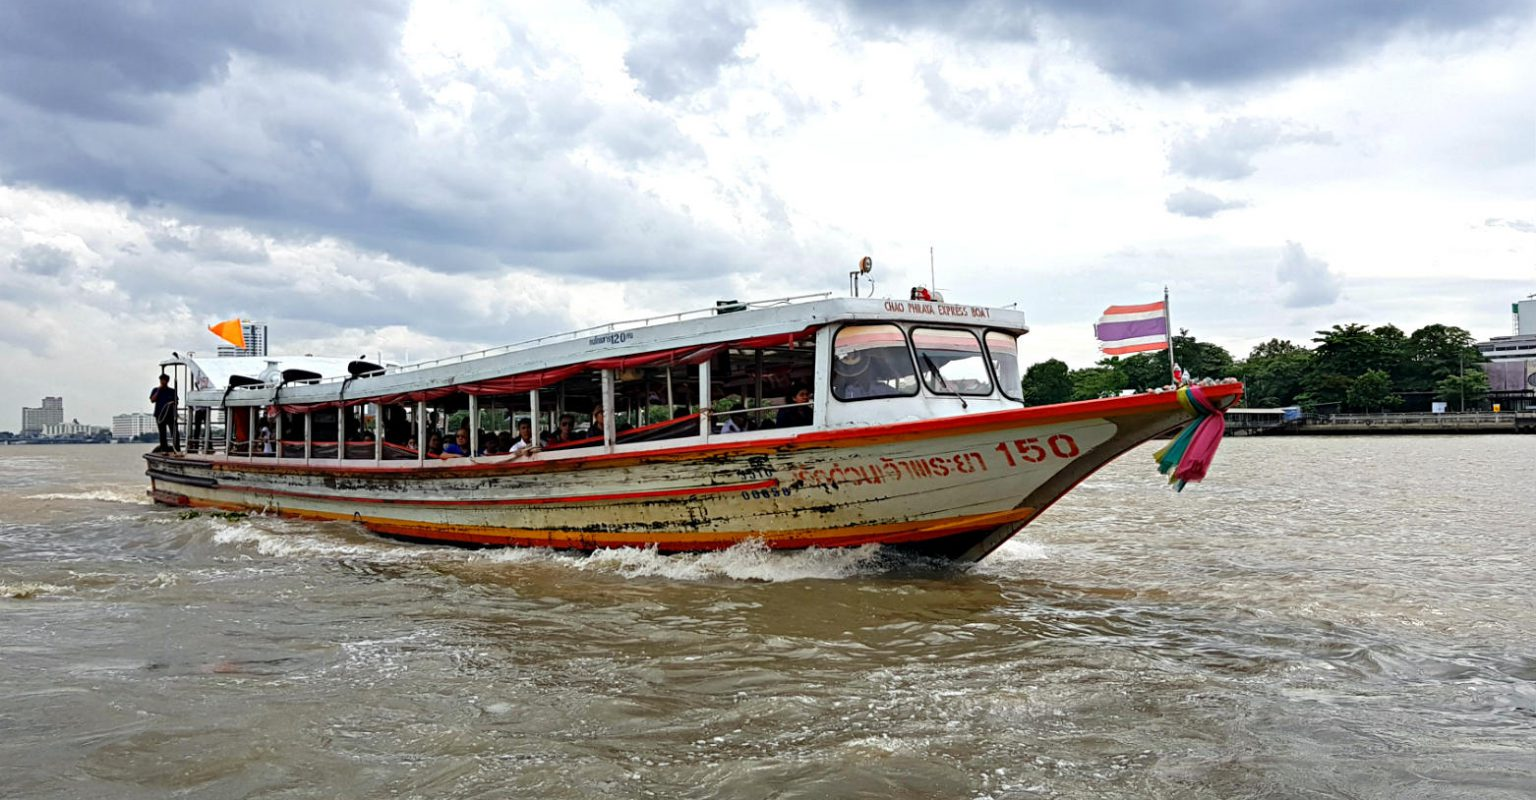 Chao Phraya River boat on the river of Bangkok